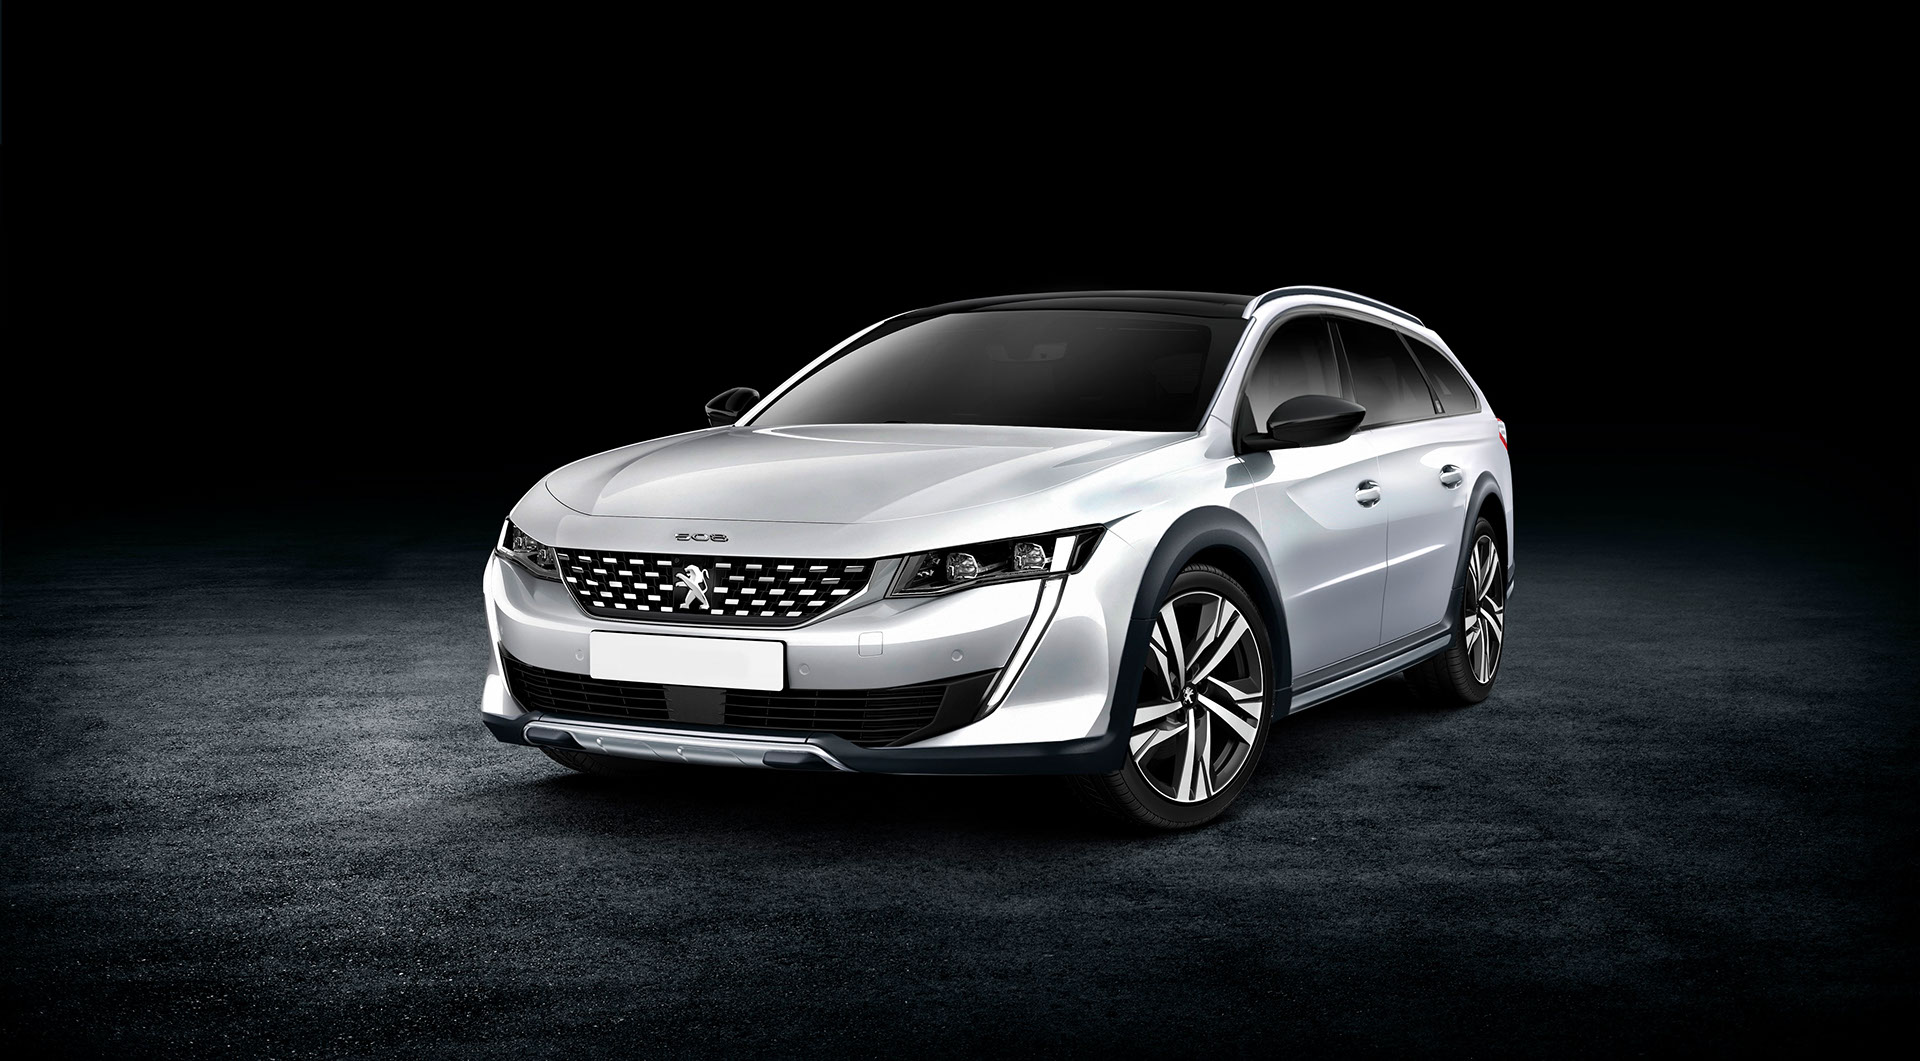 all new peugeot 508 wagon and rxh renderings drive us mad autoevolution. Black Bedroom Furniture Sets. Home Design Ideas